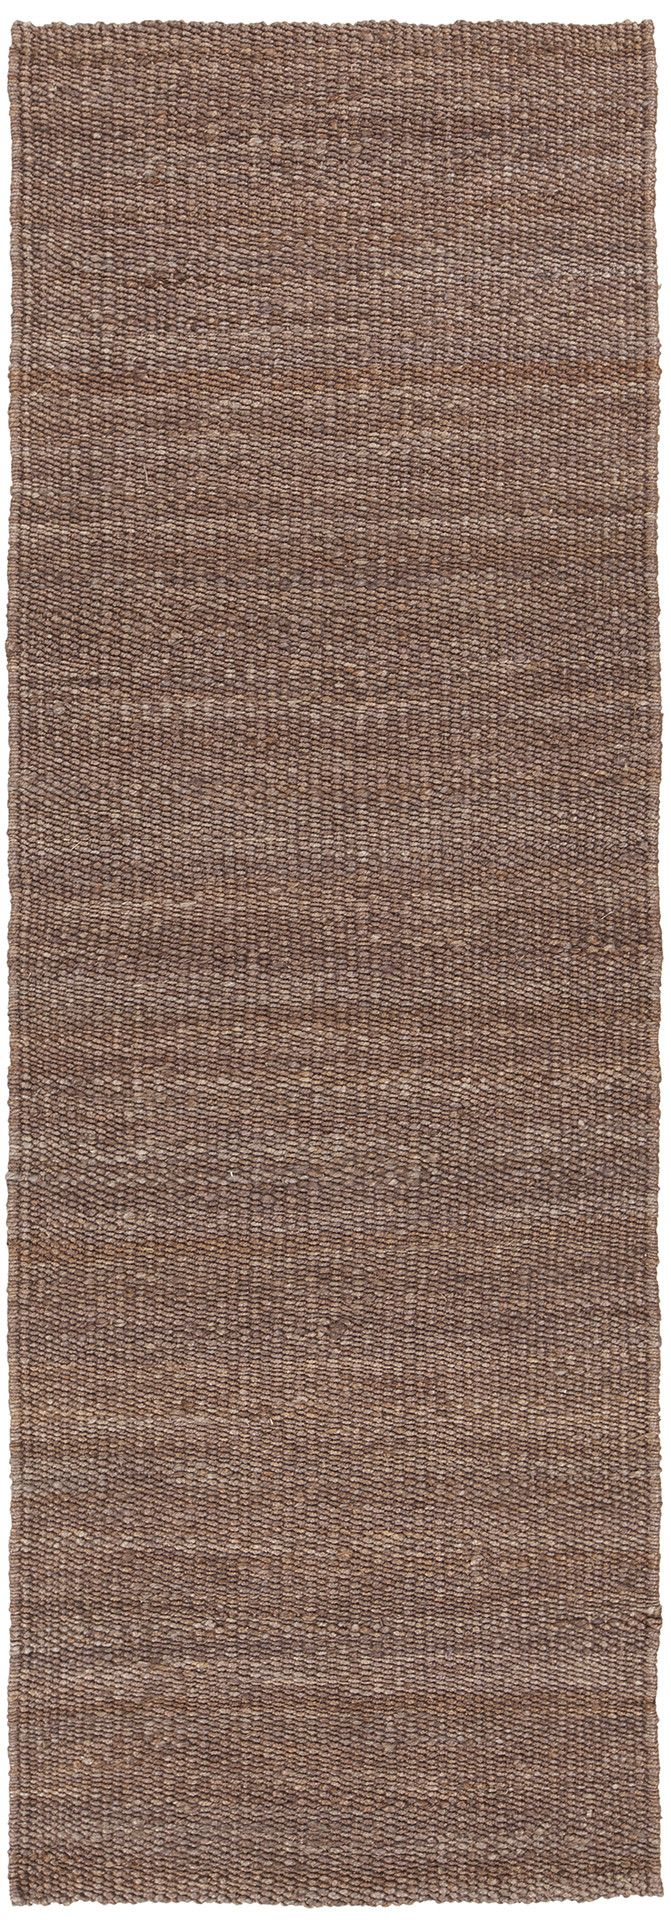 Brown Hand-Woven Transitional Rug